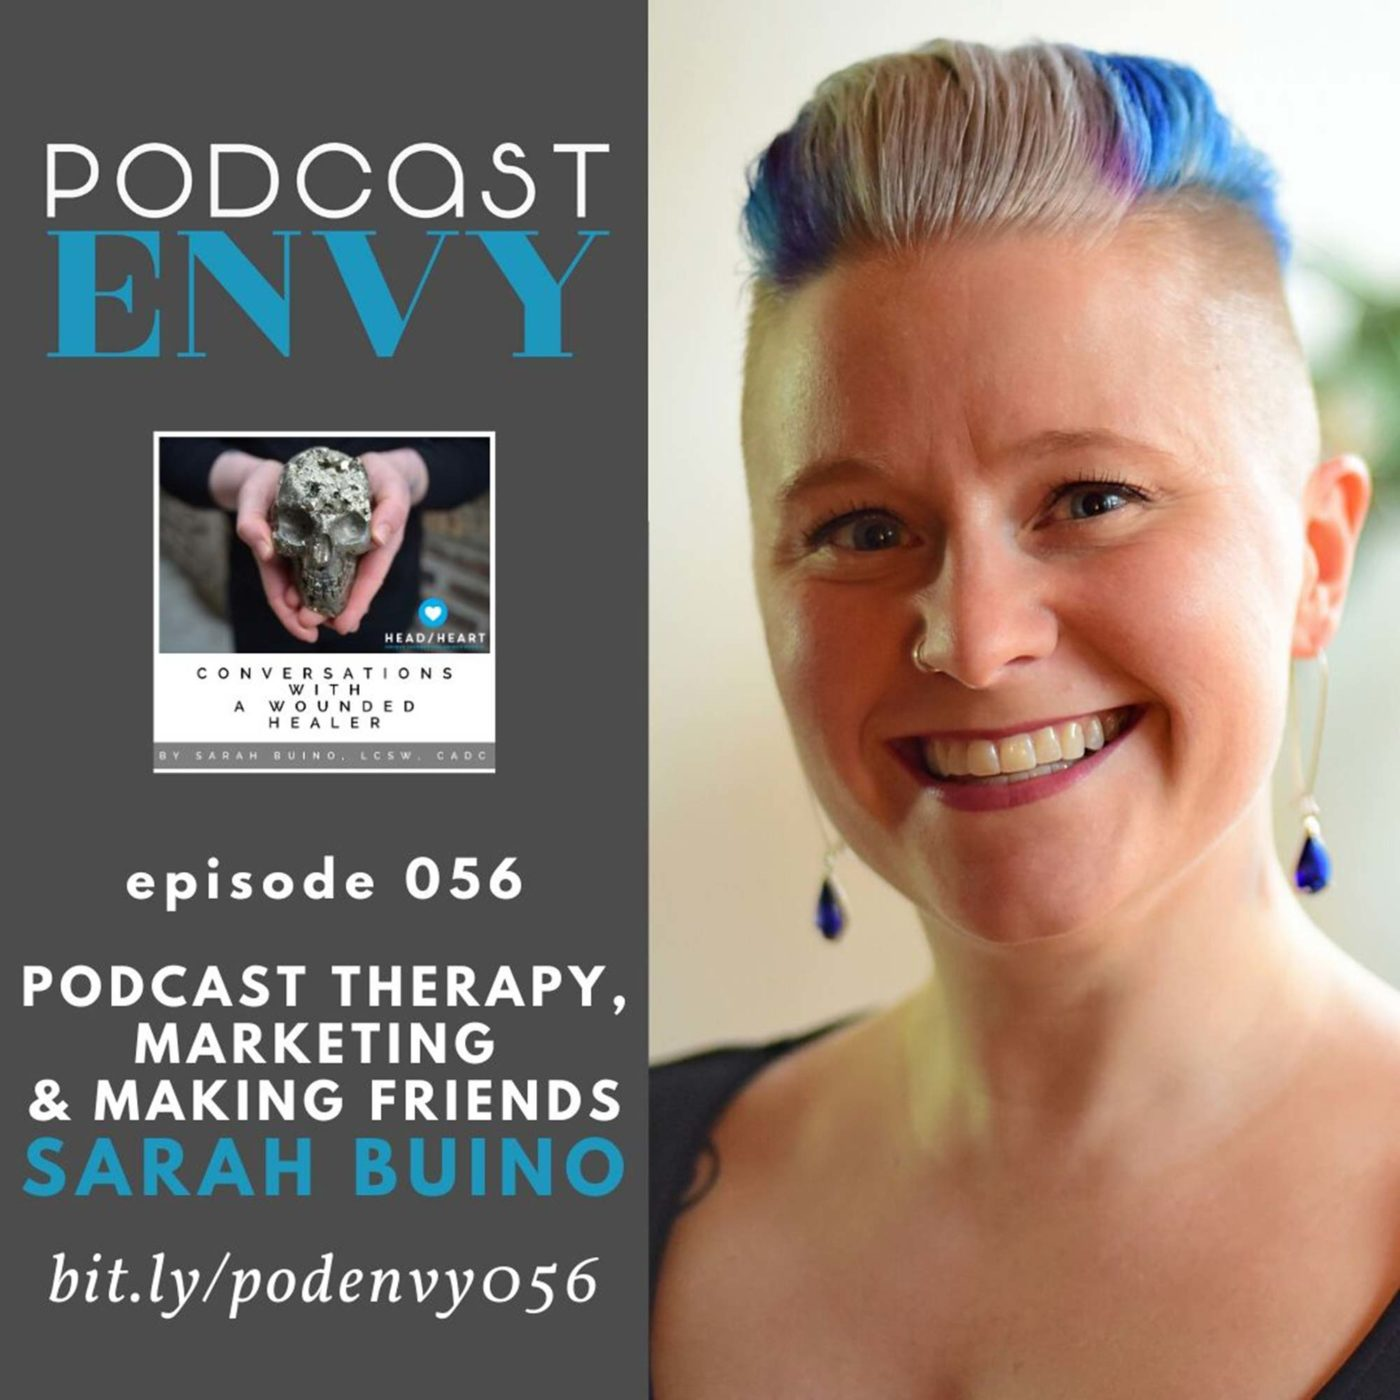 PE056: Podcast therapy, marketing, & making friends on your show with Sarah Buino